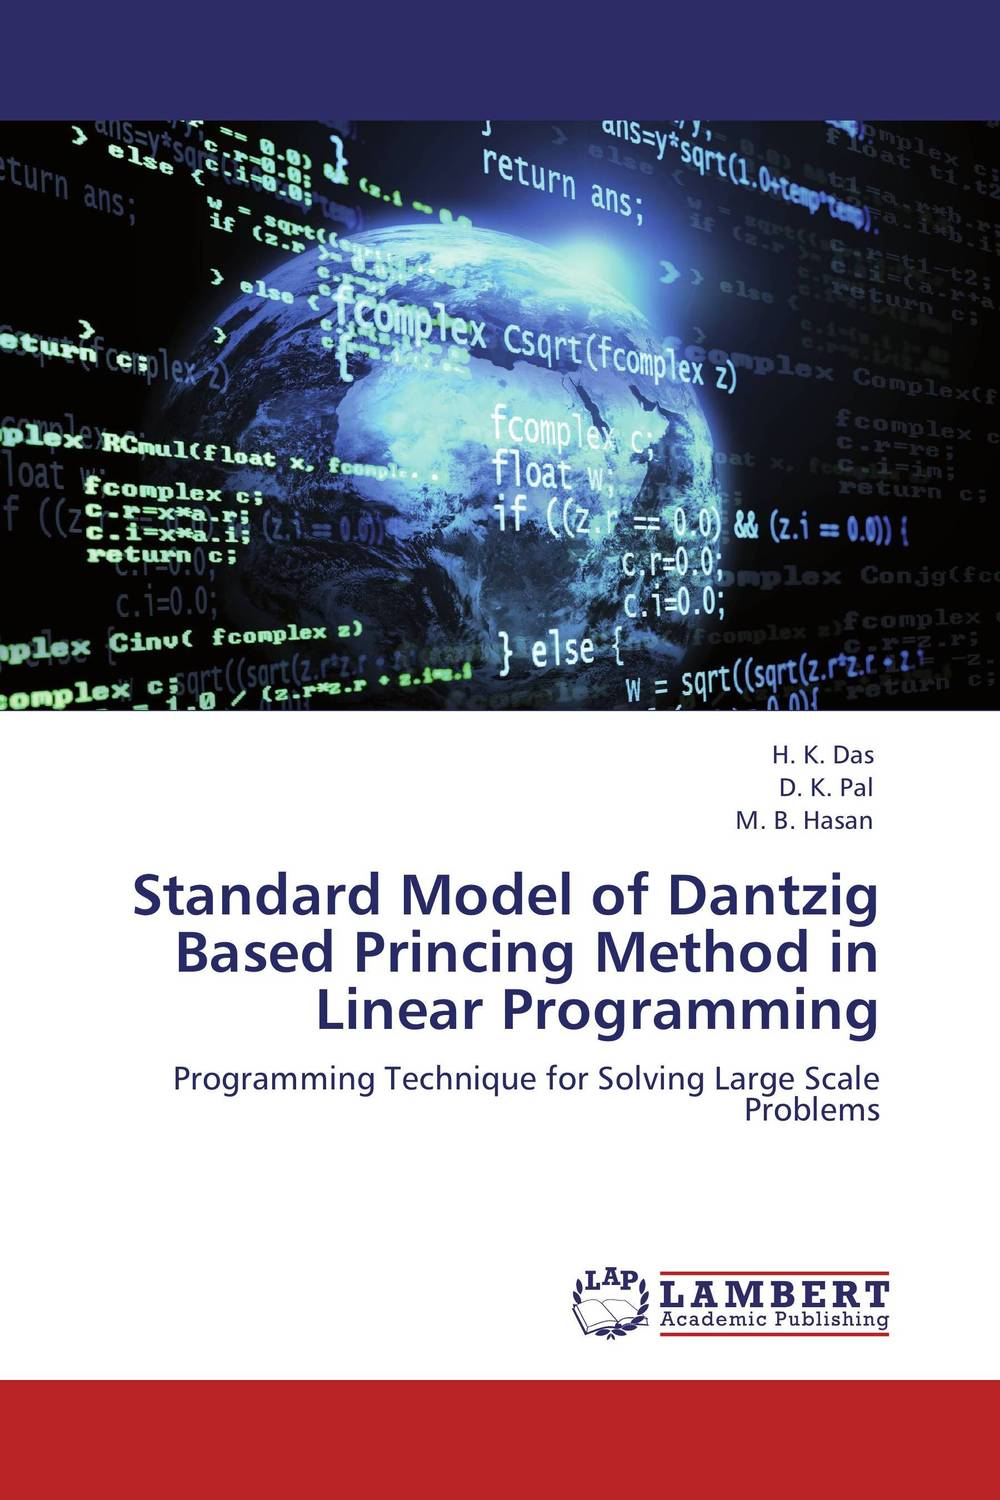 Standard Model of Dantzig Based Princing Method in Linear Programming recent trends for solving fuzzy multi objective programming problems